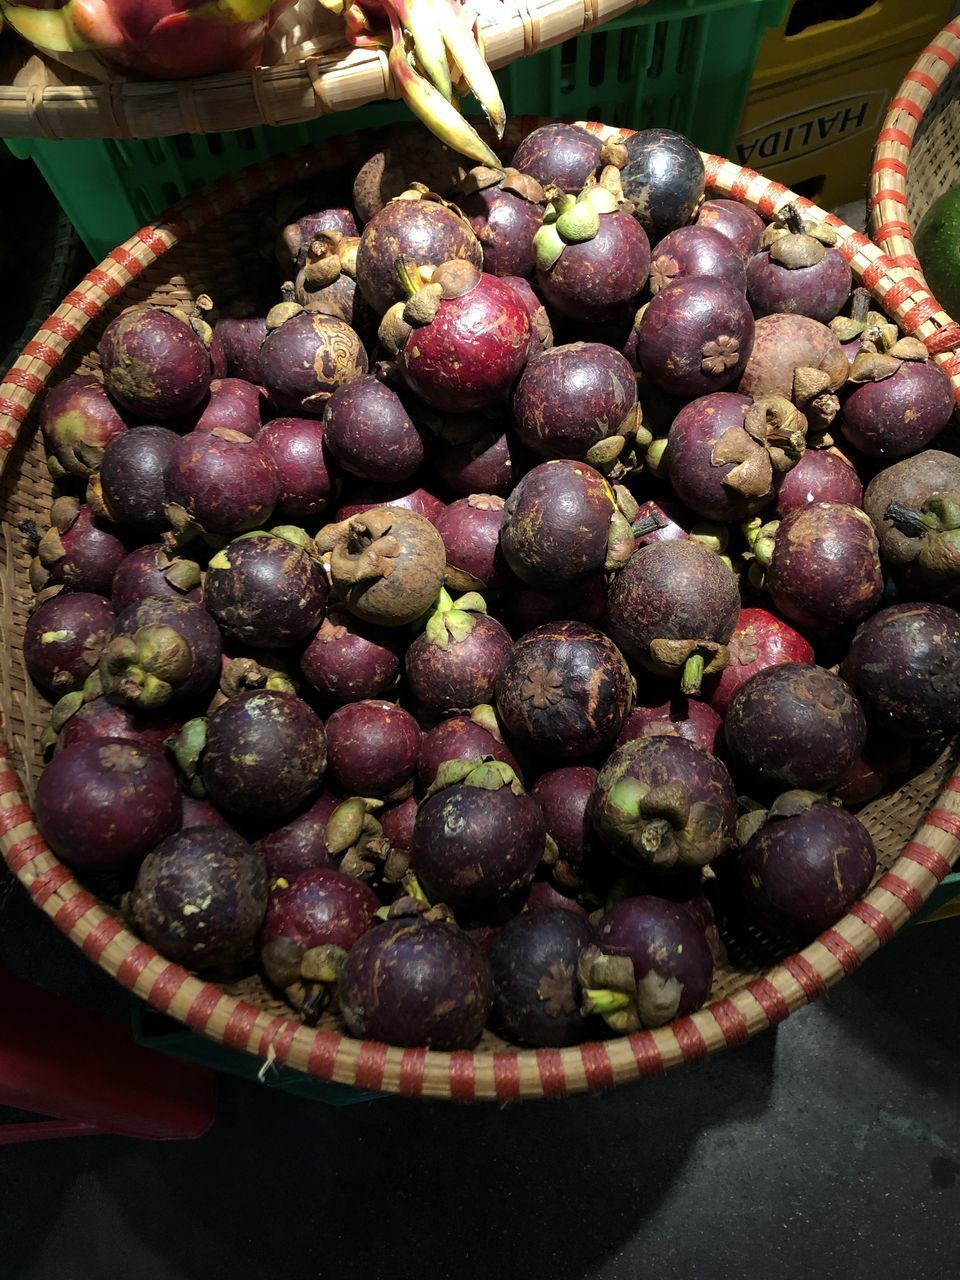 food and drink, food, healthy eating, freshness, wellbeing, fruit, large group of objects, still life, no people, close-up, container, abundance, day, basket, indoors, market, high angle view, for sale, market stall, bowl